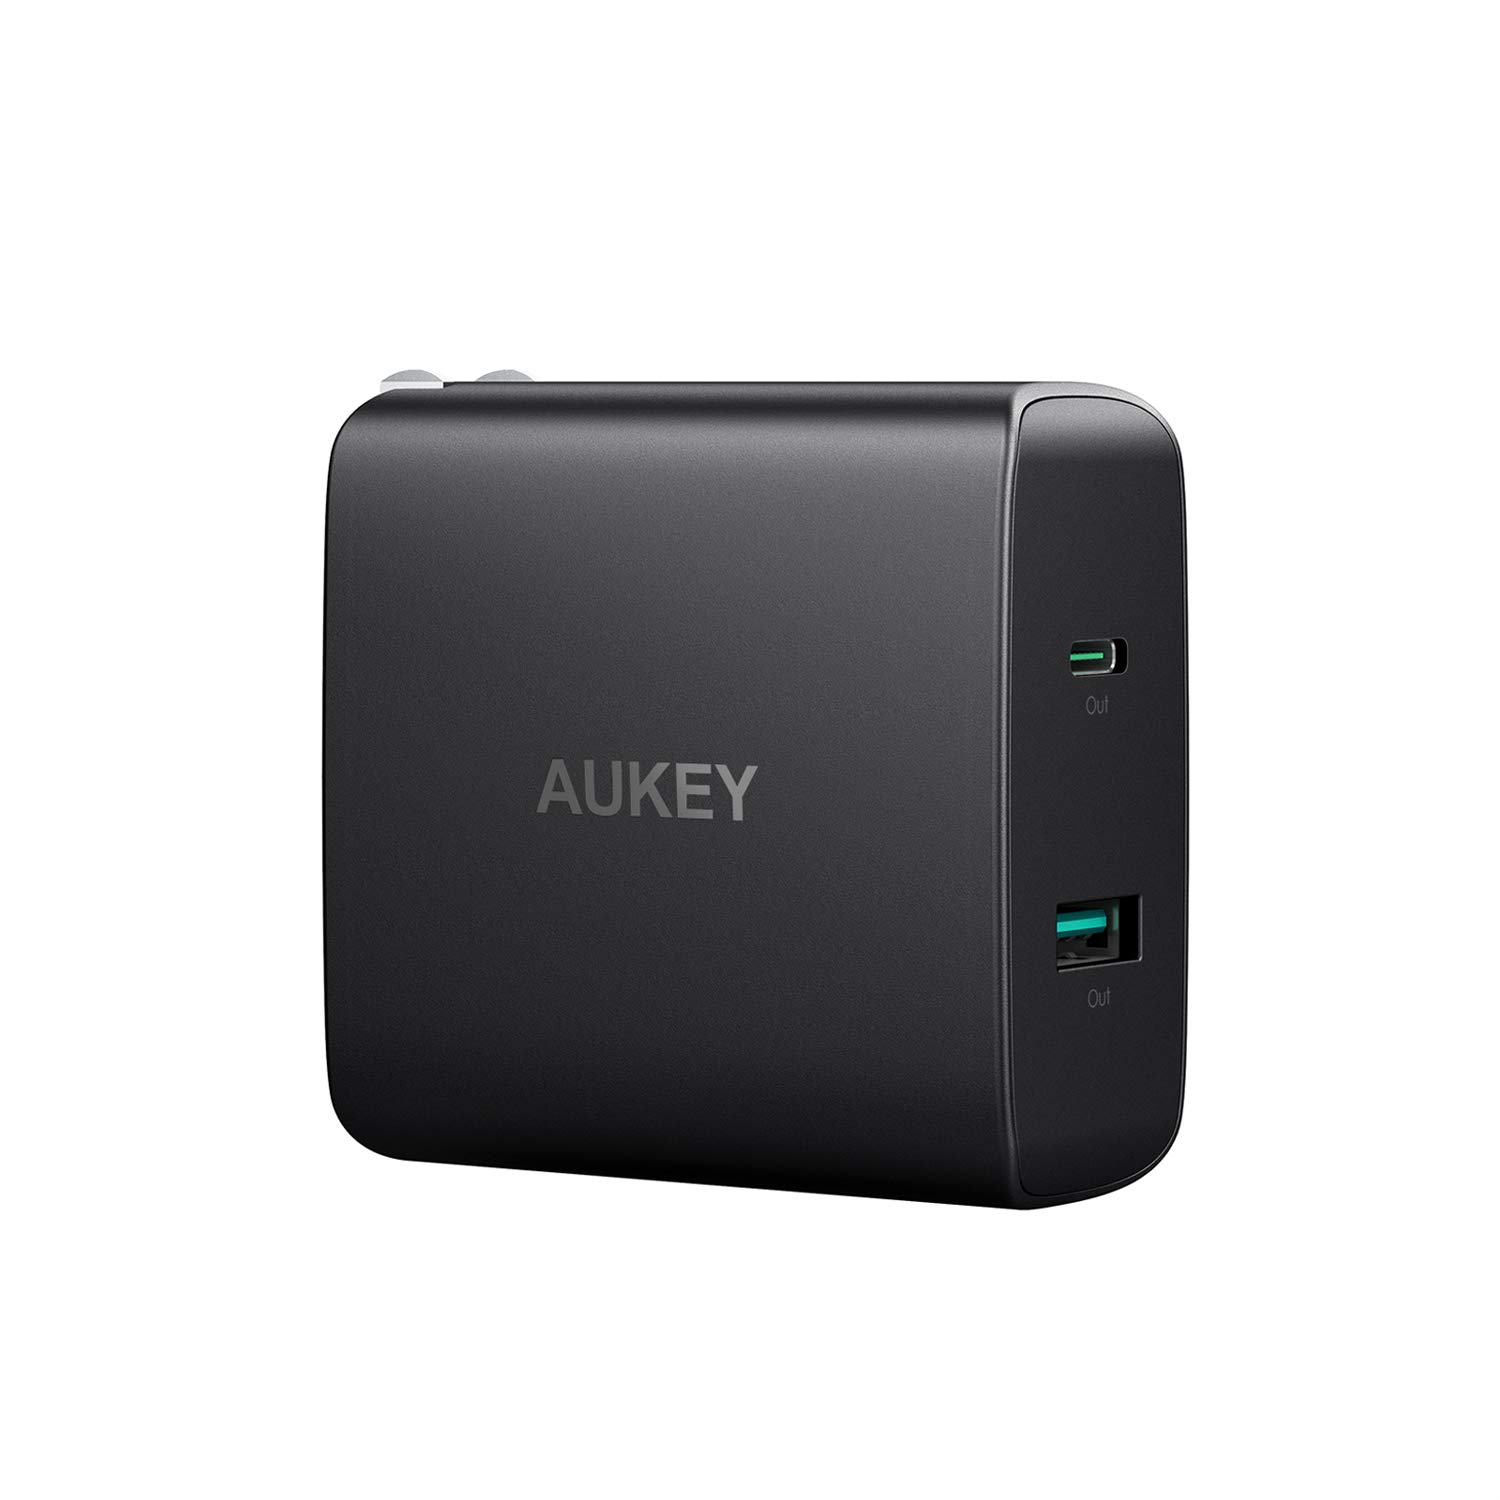 AUKEY USB C Charger with 56.5W Wall Charger, One 46W Power Delivery 3.0 & 5V / 2.1A Ports USB Wall Charger, Compatible MacBook, iPhone Xs/XS Max/XR, Samsung Galaxy S8 / S8+ / Note8 and More PA-Y10